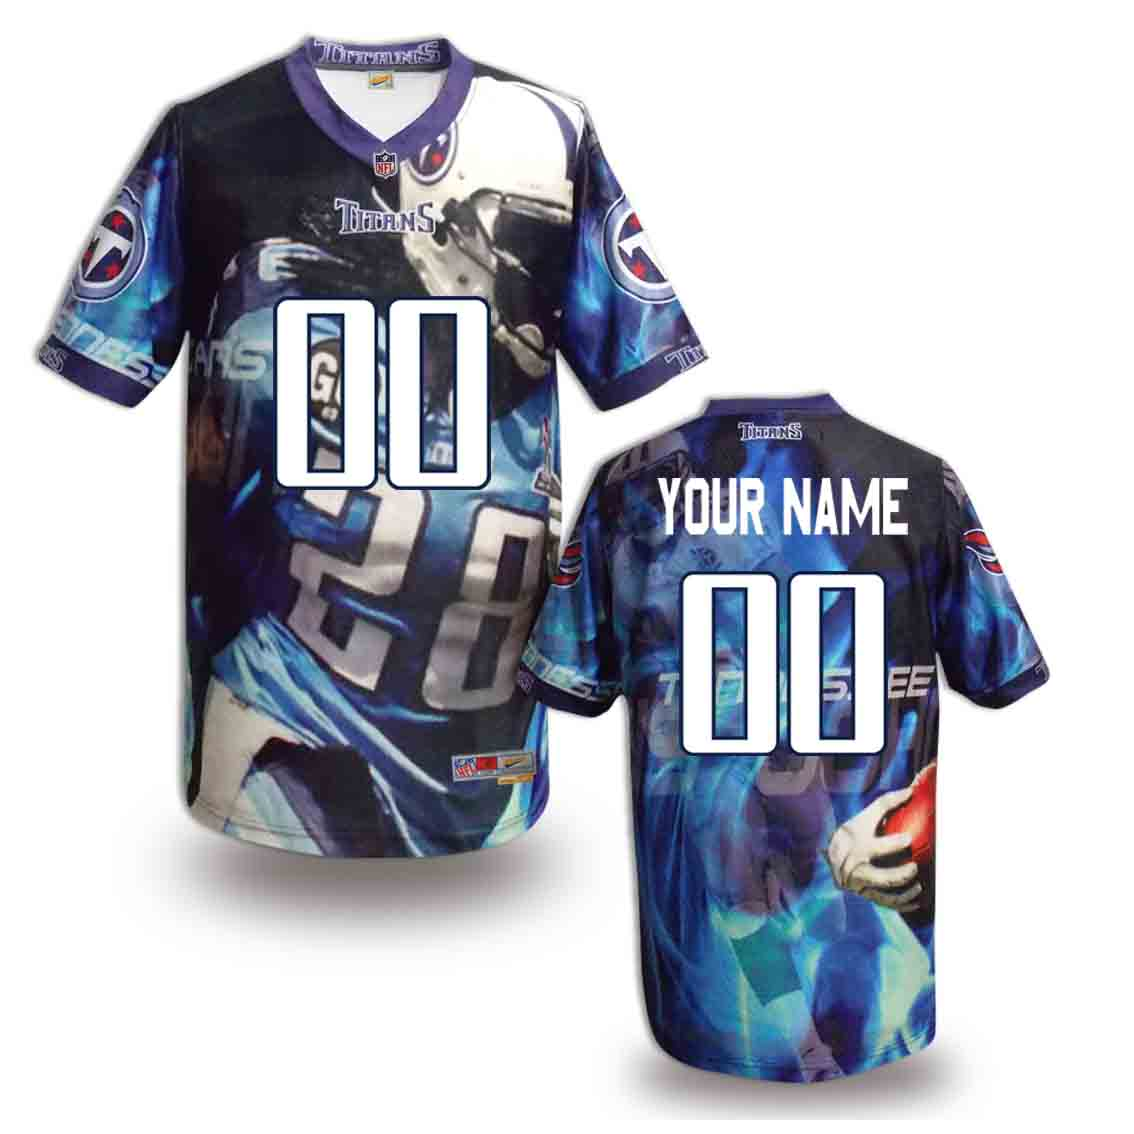 Nike Titans Customized Fashion Stitched Jerseys02